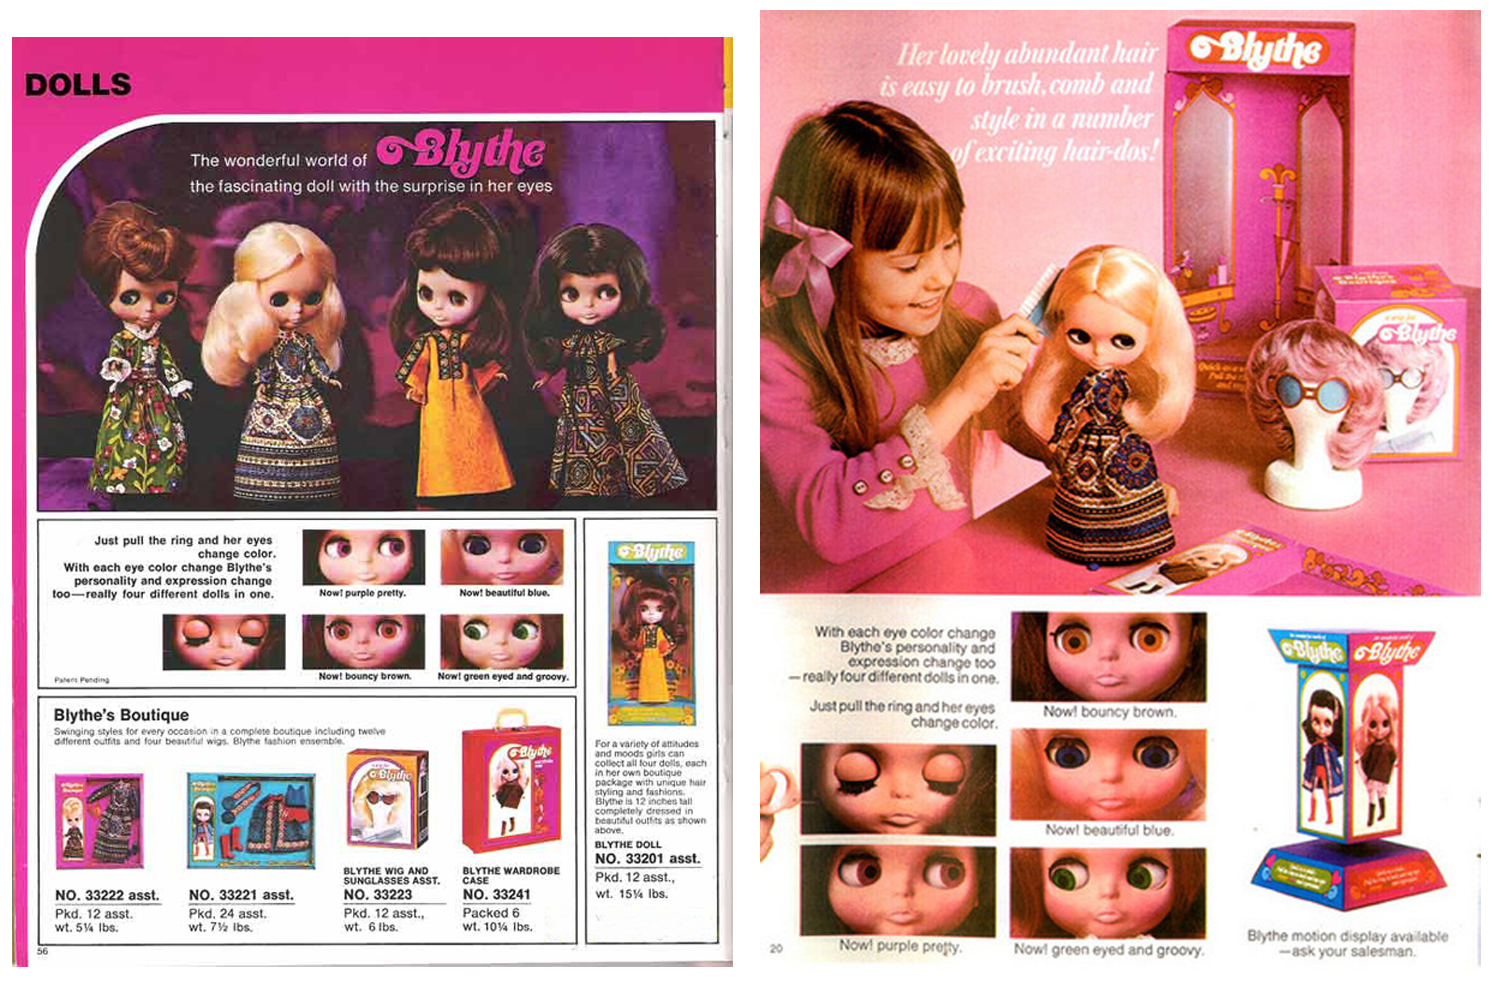 zazie_blytheopedia_kenner_blythe_dolls_advertise05